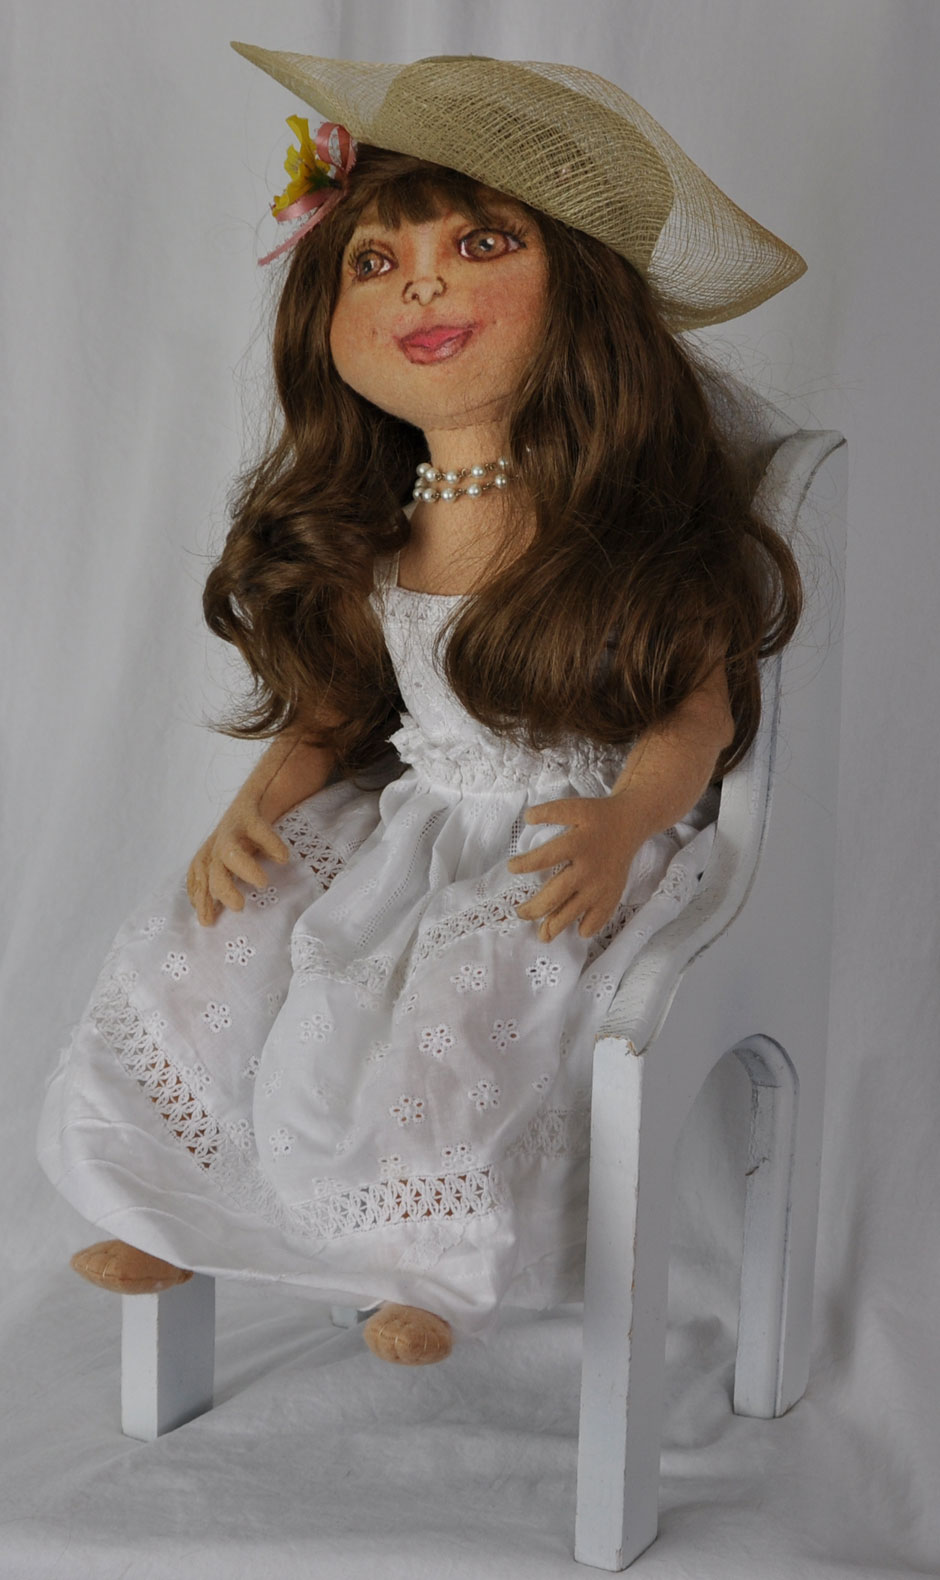 Handmade Ruby Sparks Girl Doll 2